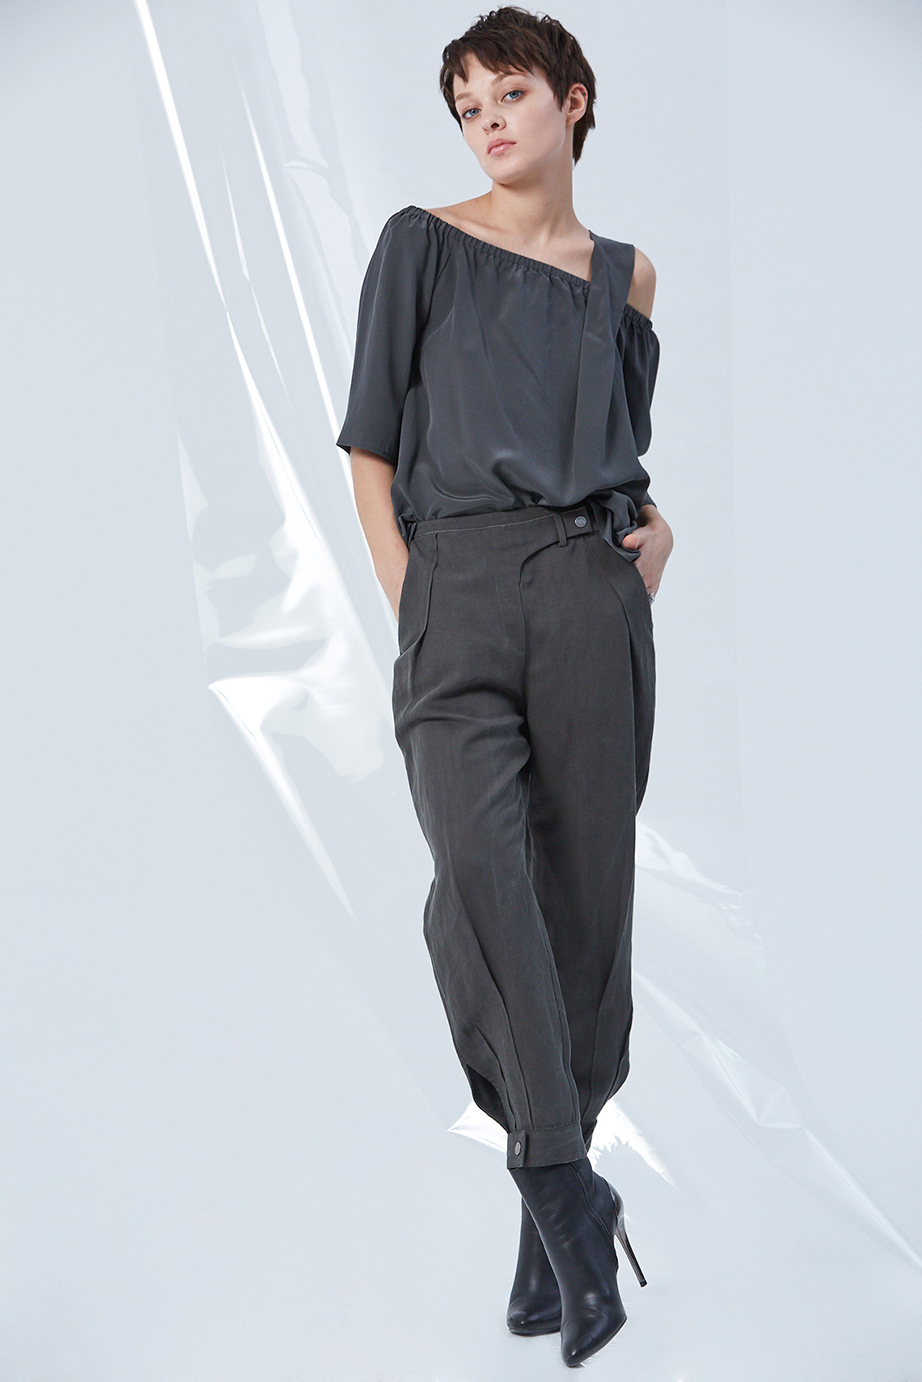 Top GC13183 | Pants GC02309